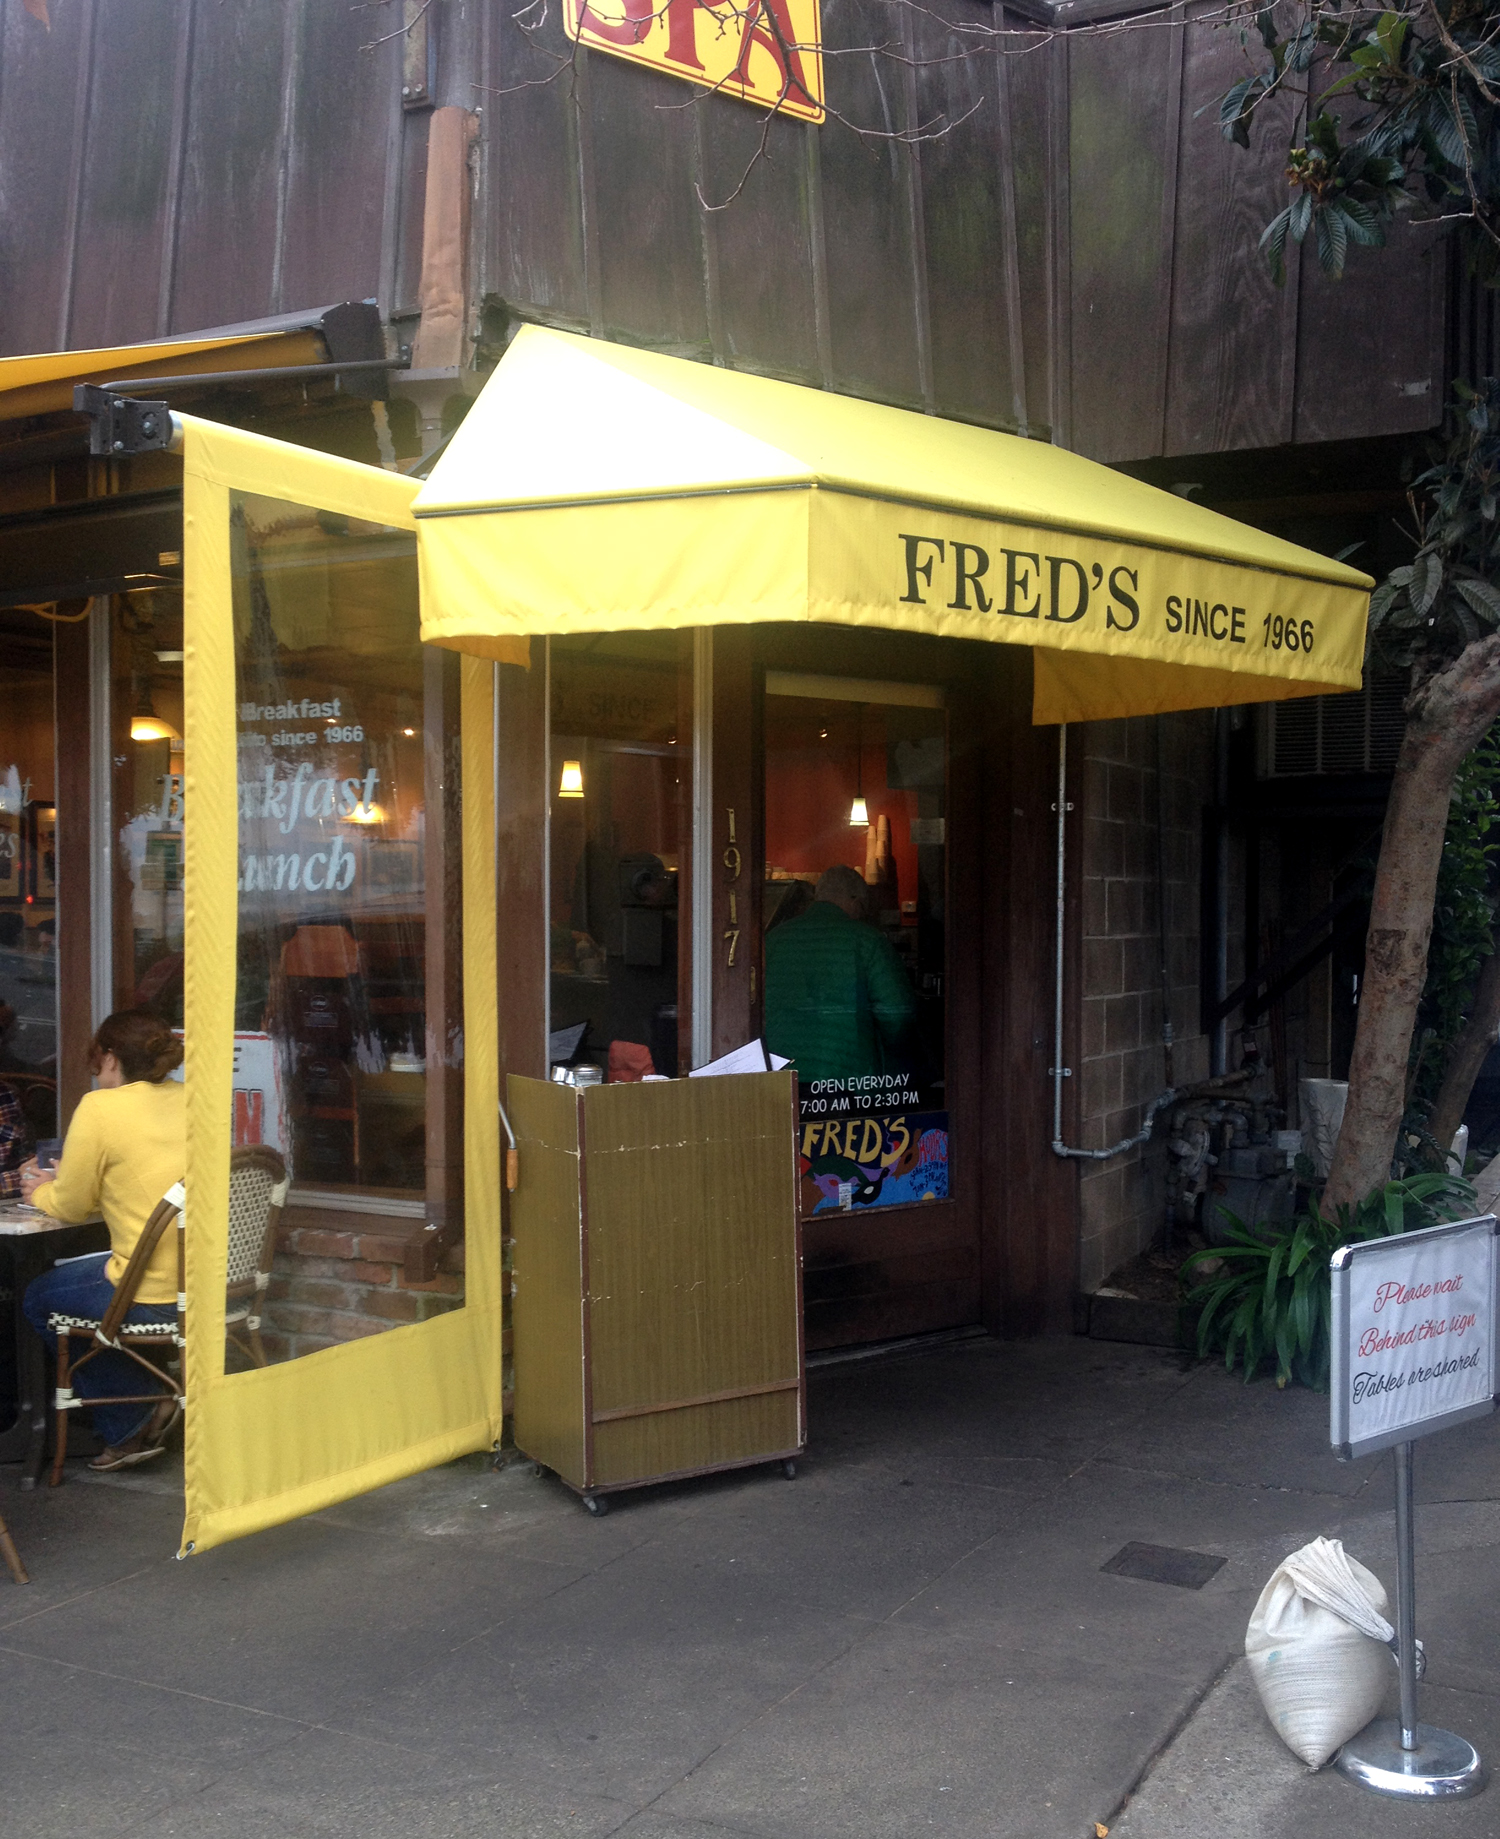 Fred's in Sausalito, CA